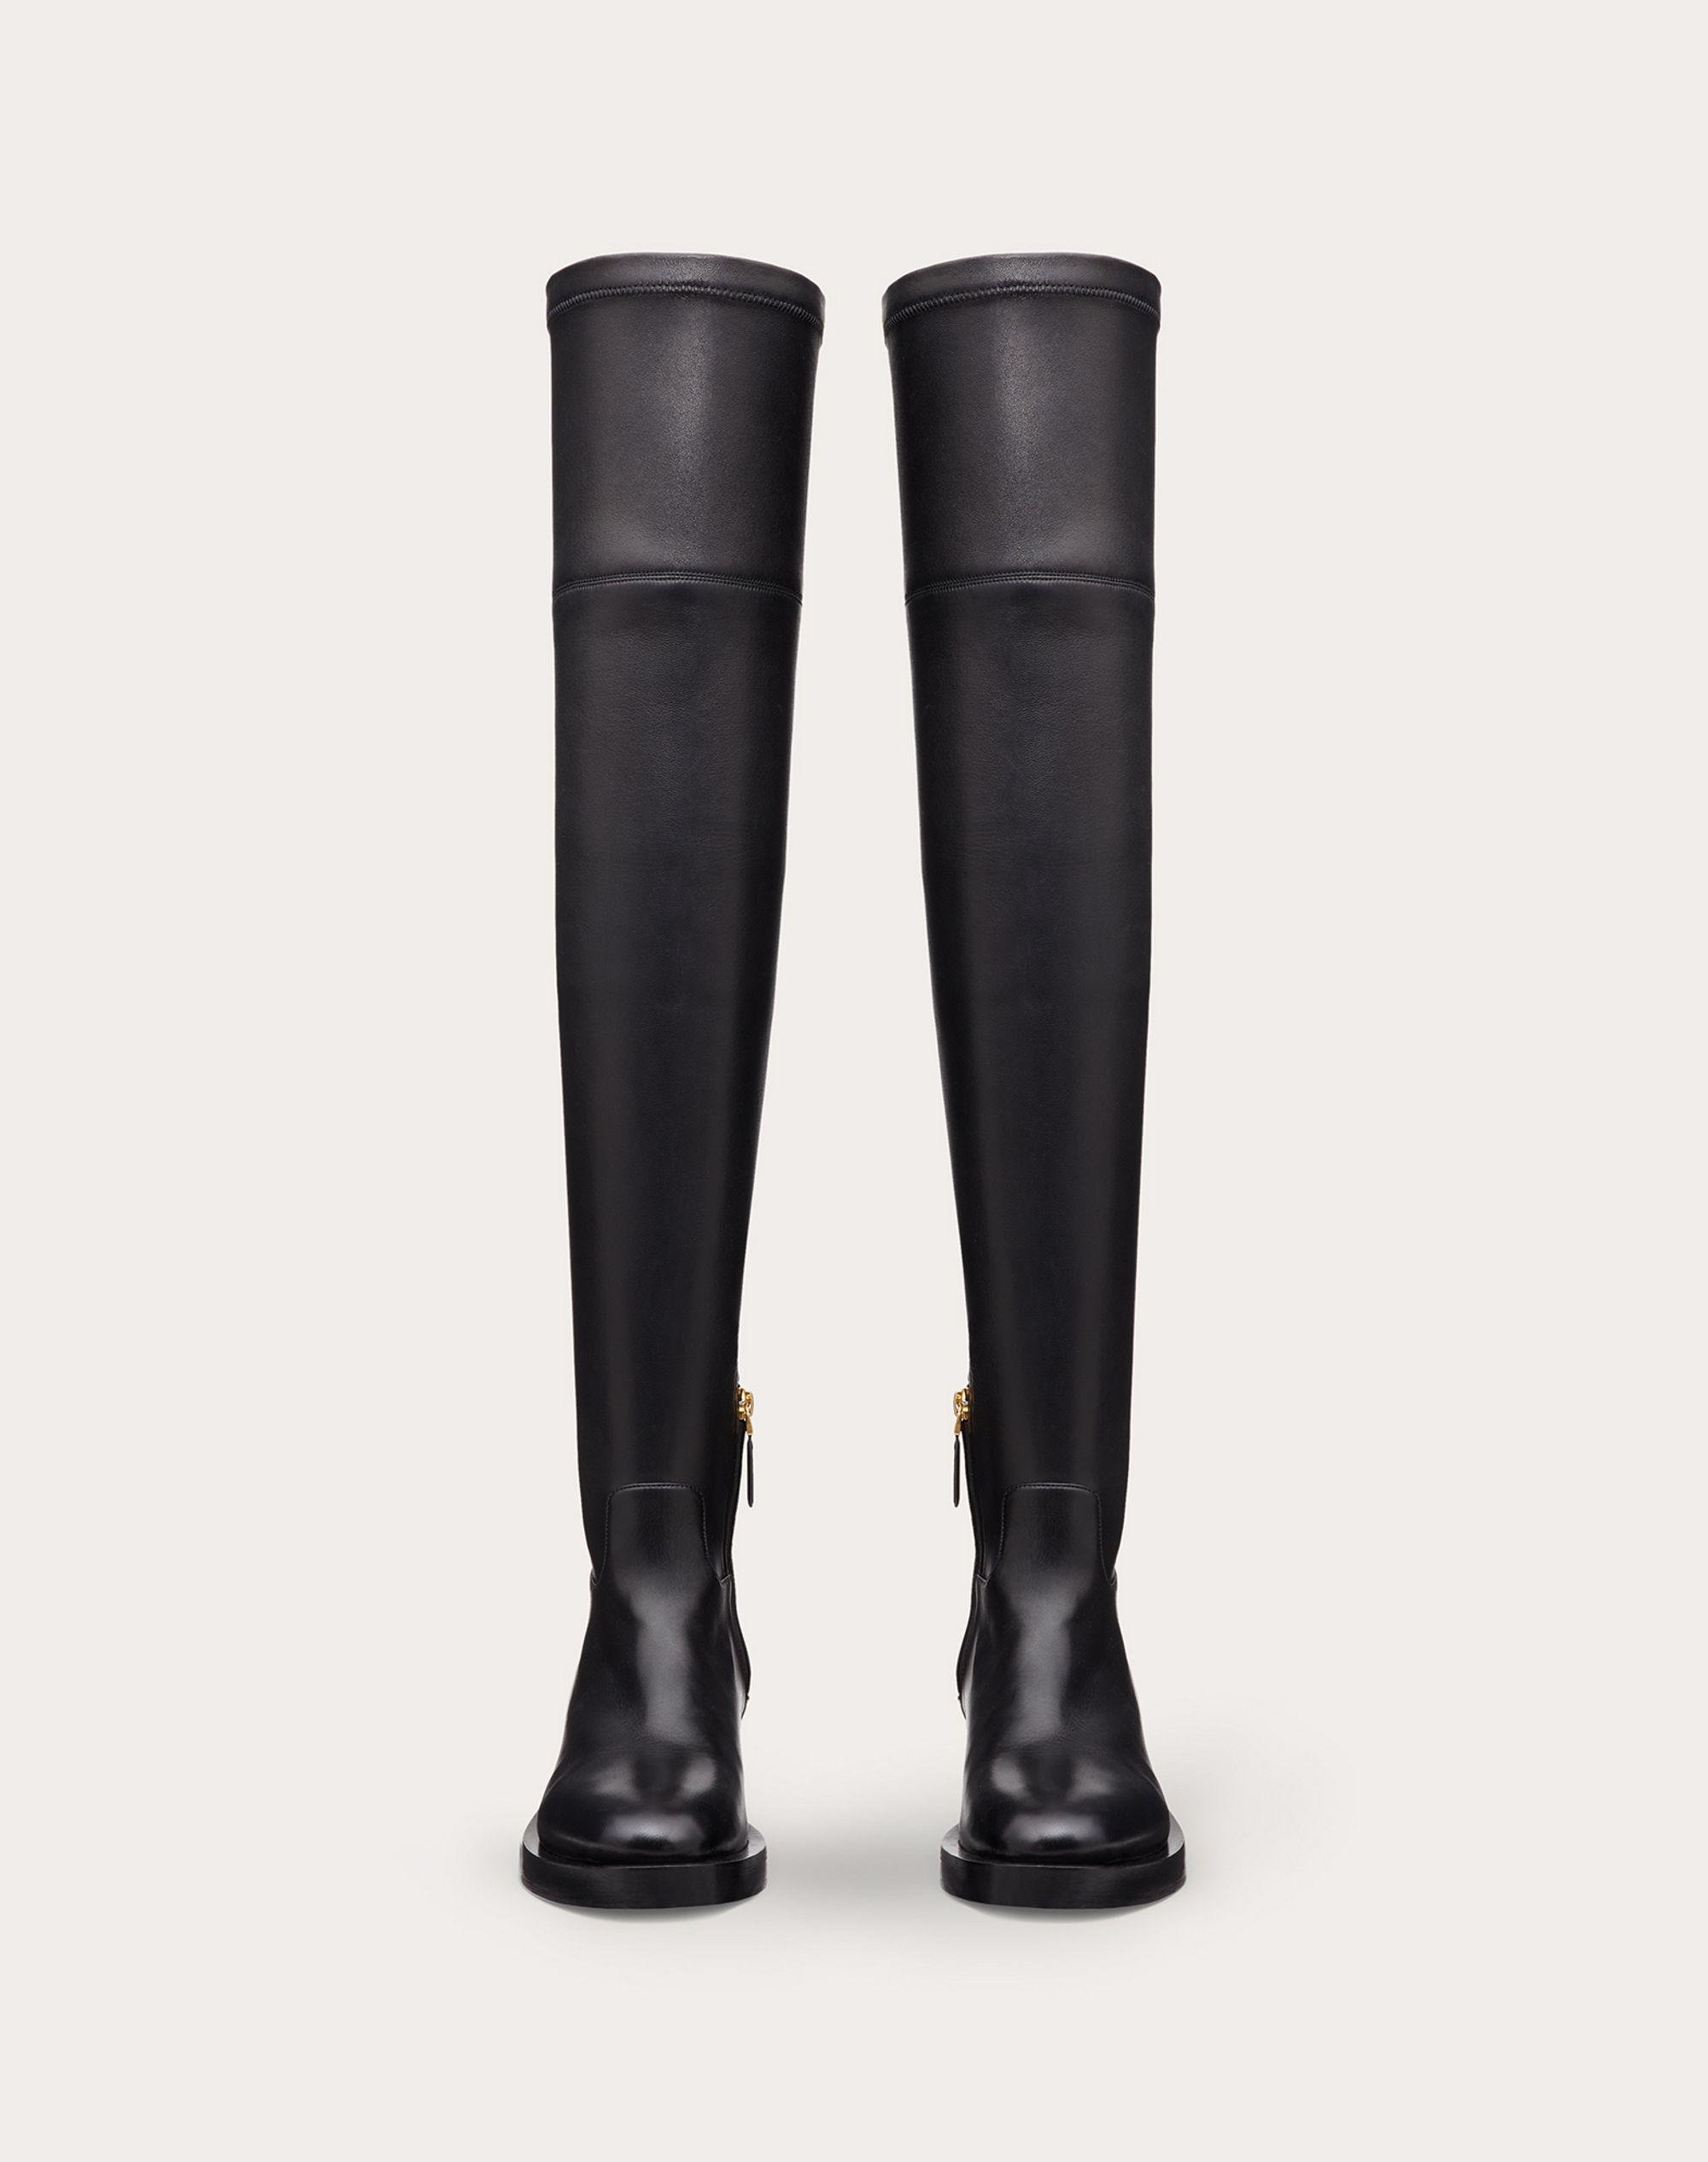 ROMAN STUD STRETCH NAPPA OVER-THE-KNEE BOOT 30MM 4